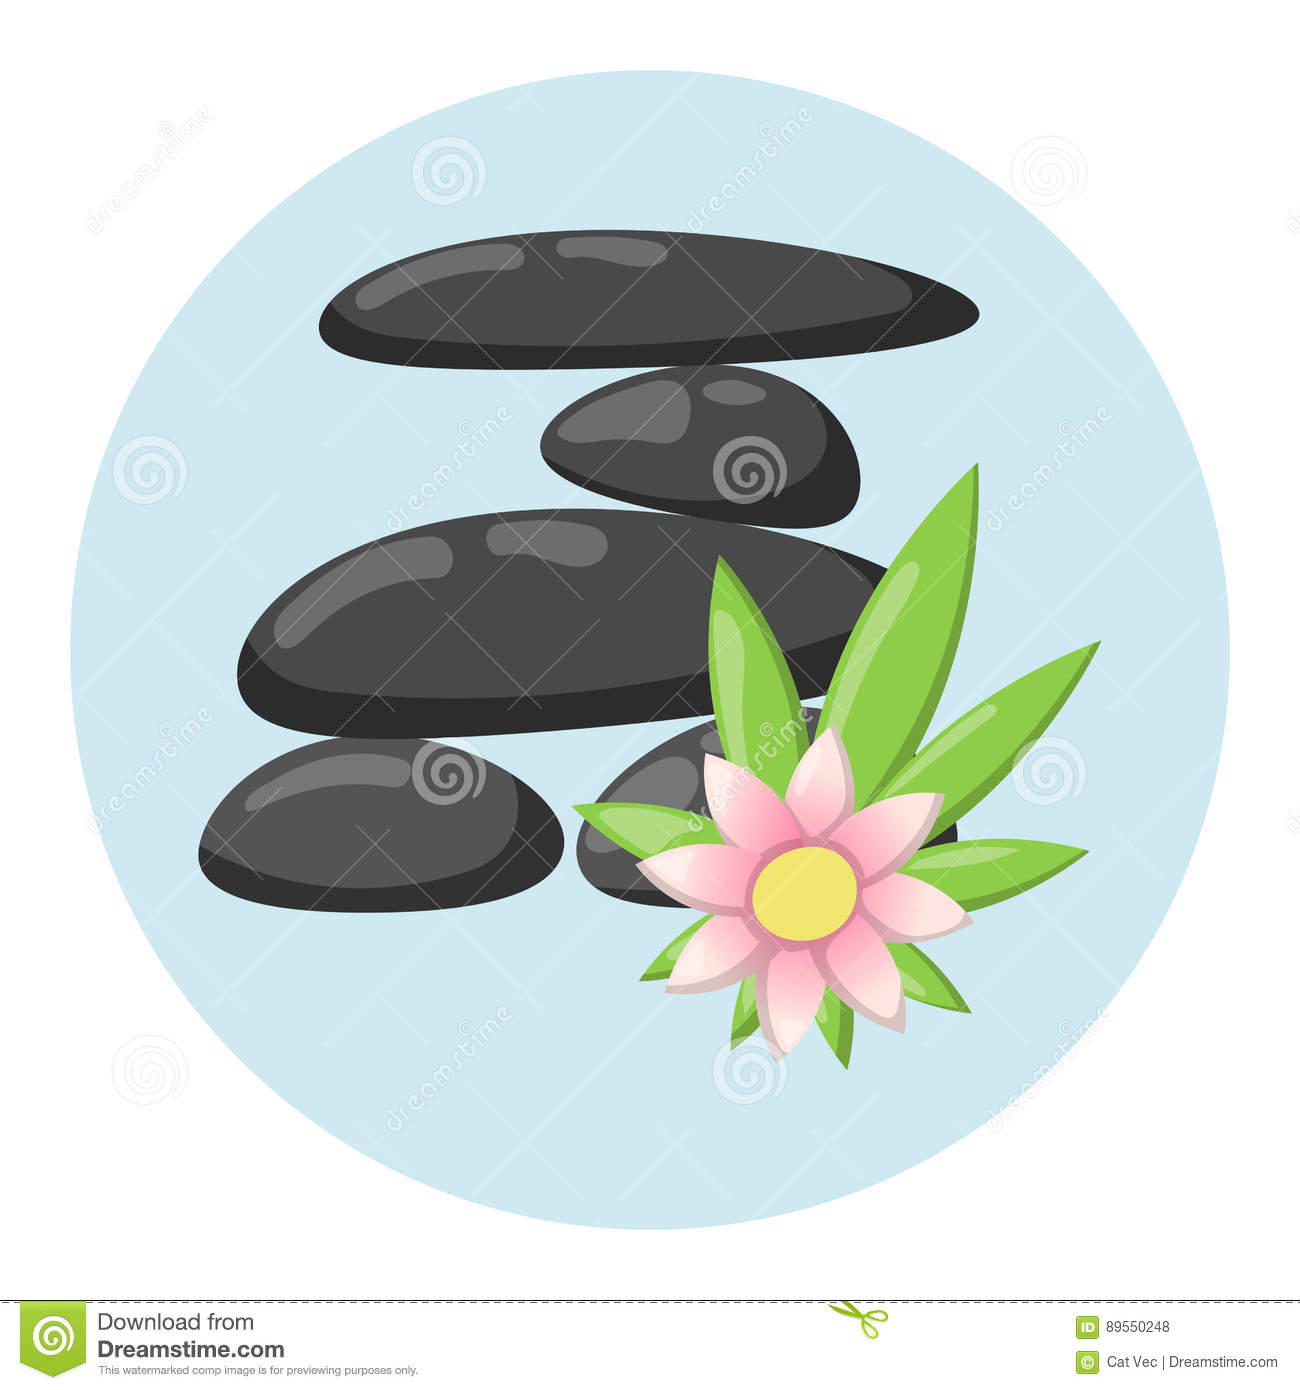 Pyramid from sea pebble relax heap stones isolated and healthy wellness black massage meditation natural tool spa